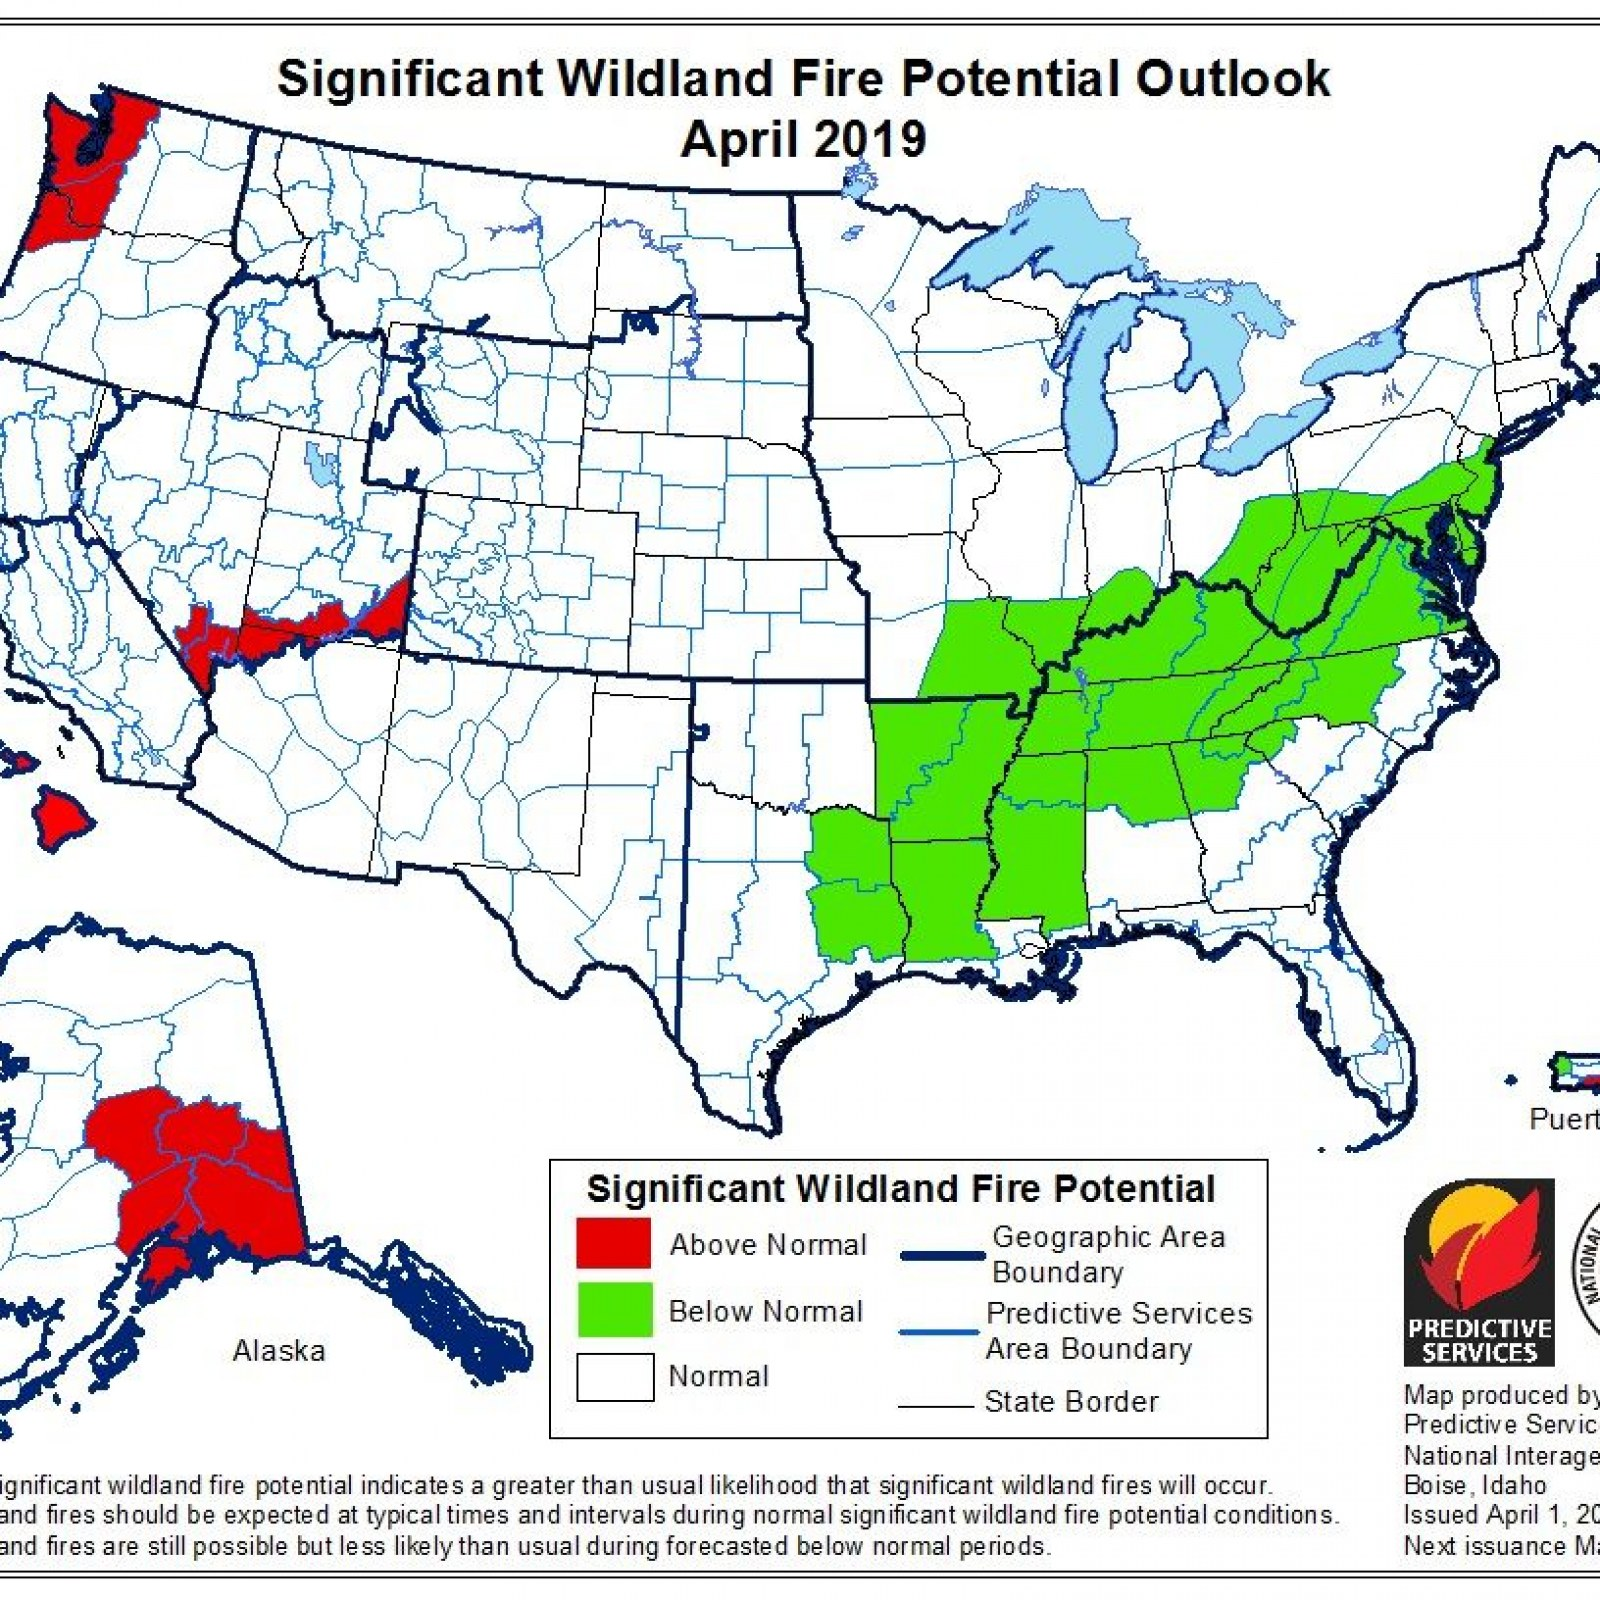 Wildfire Season Forecast For Spring Summer Month Shows Some Areas - Us-wildfire-activity-map